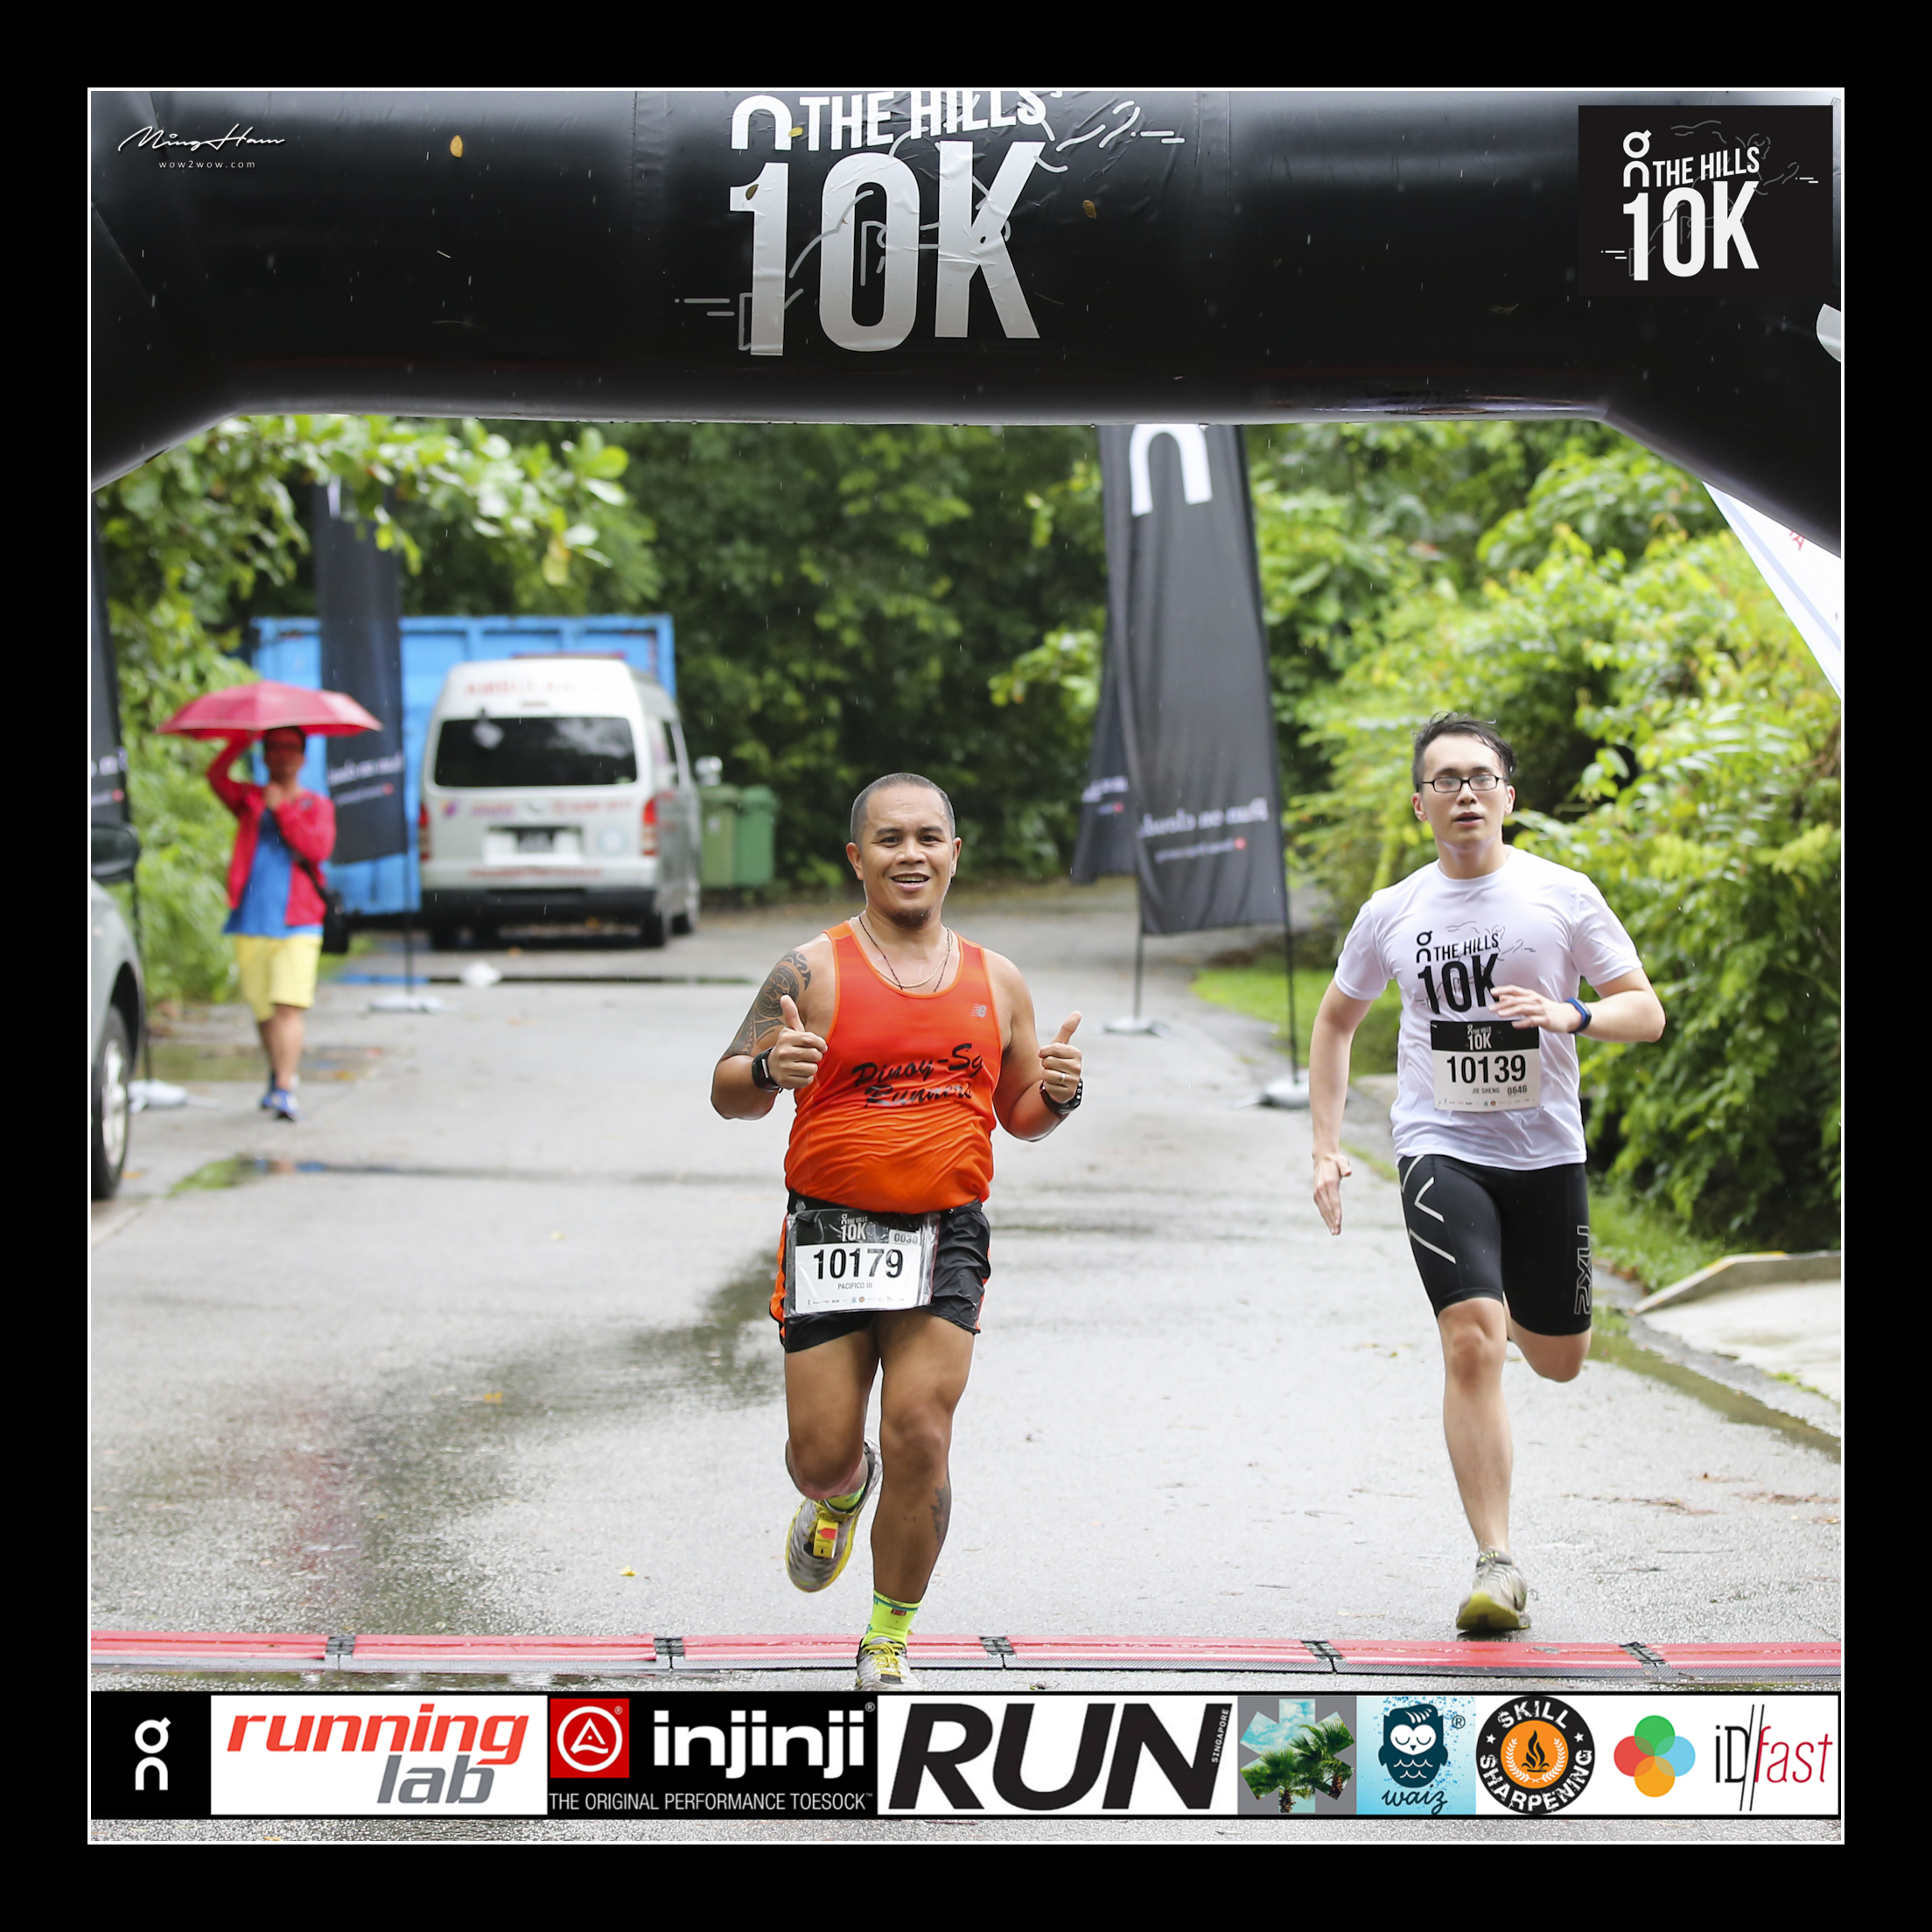 2018_On The Hills 10K_AndyCF_3987